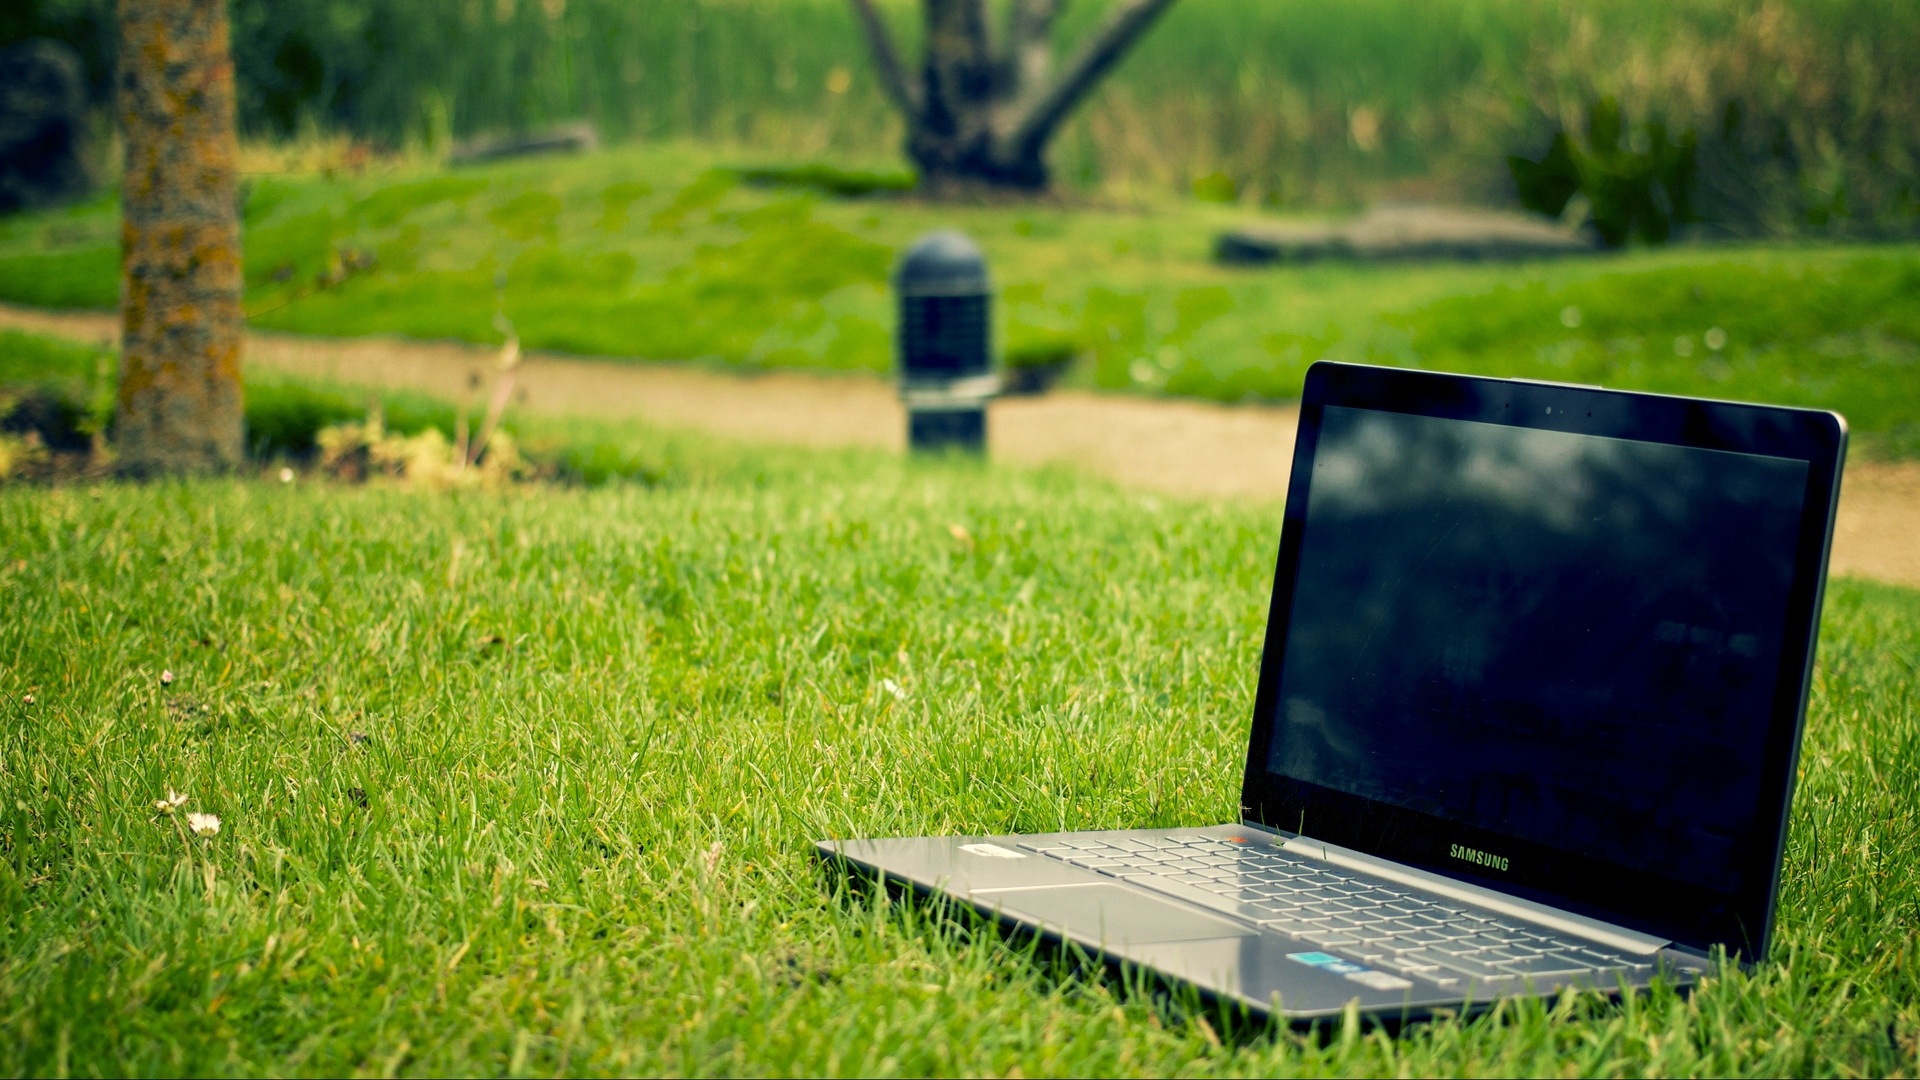 Free Wallpaper For Laptop Posted By Sarah Simpson